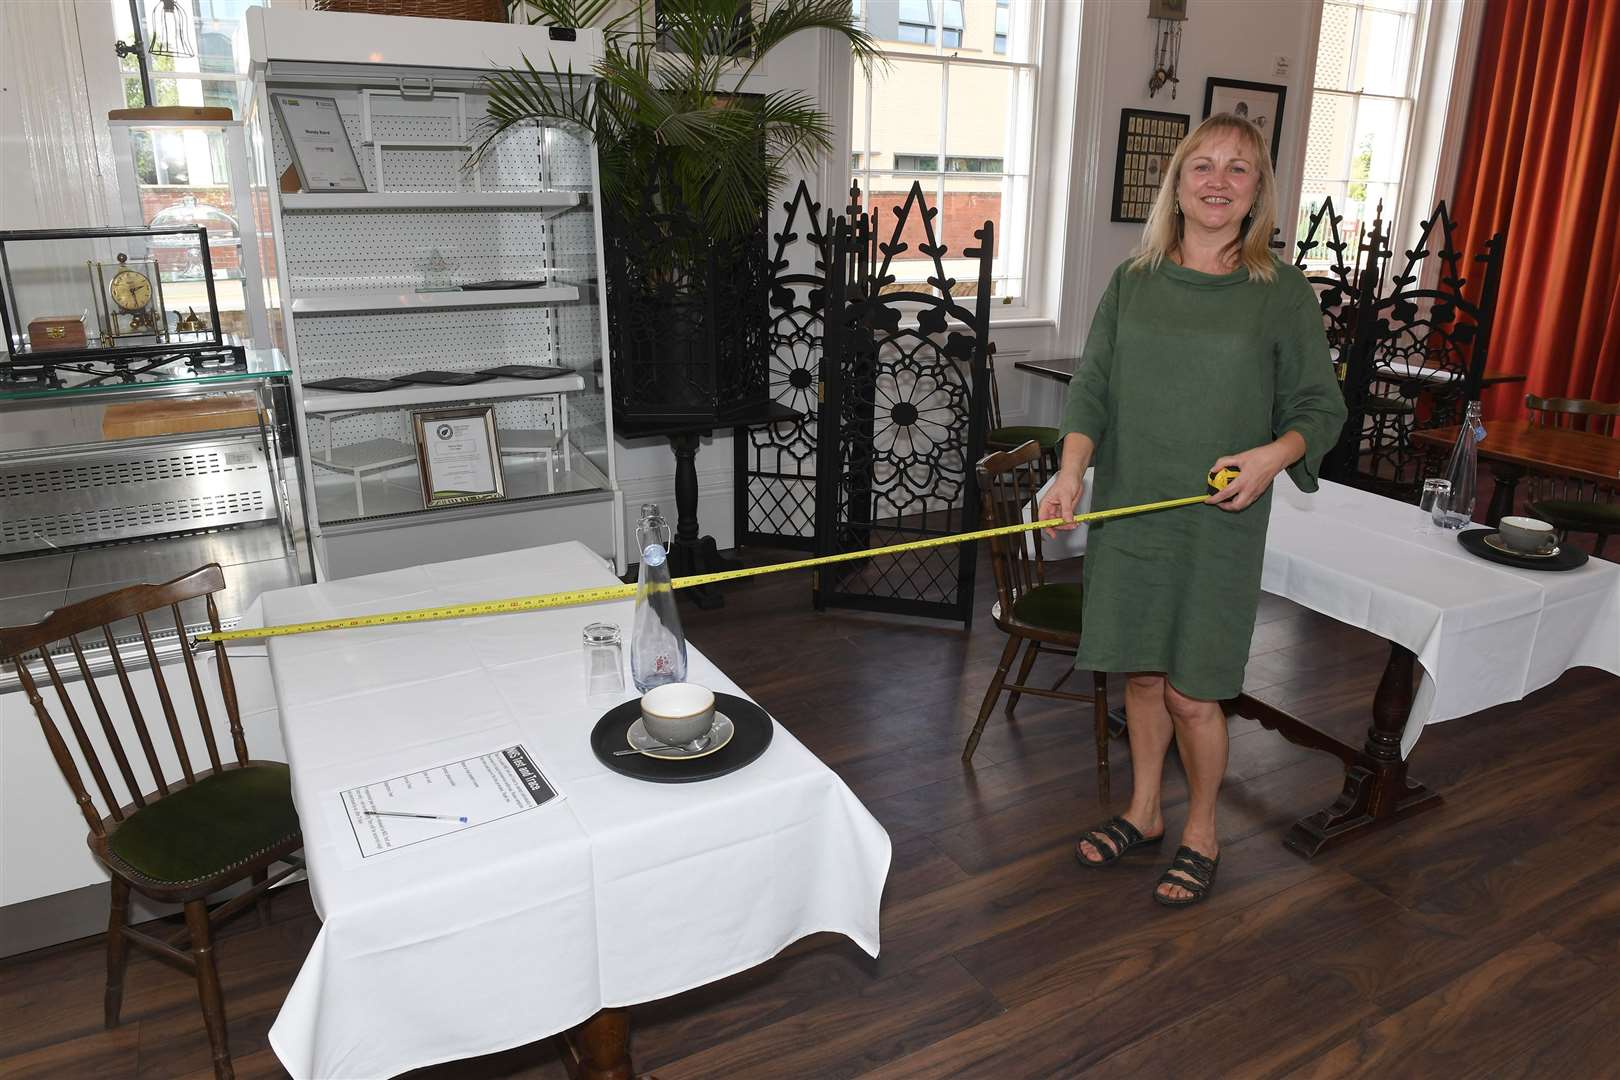 CARRIAGES Café owner Wendy Baird is ready to help people begin socialising safely again after being in lockdown, with a series of Life After Covid workshops.